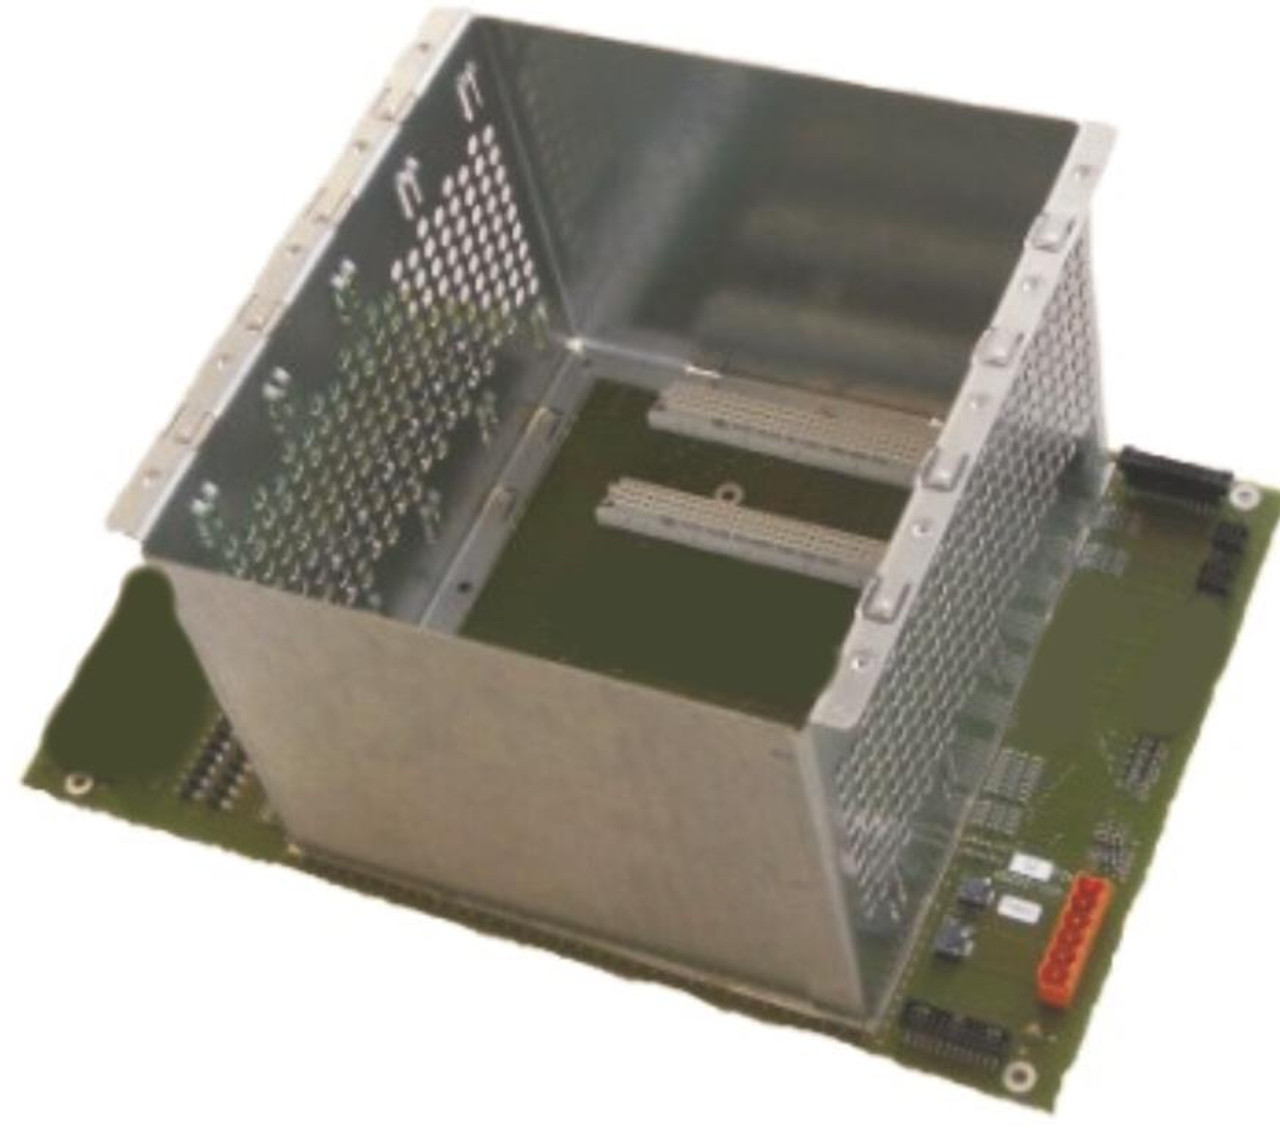 Siemens FCA2007-A1, S54400-B38-A1, Card cage (2 slots), Use only as a repair part.